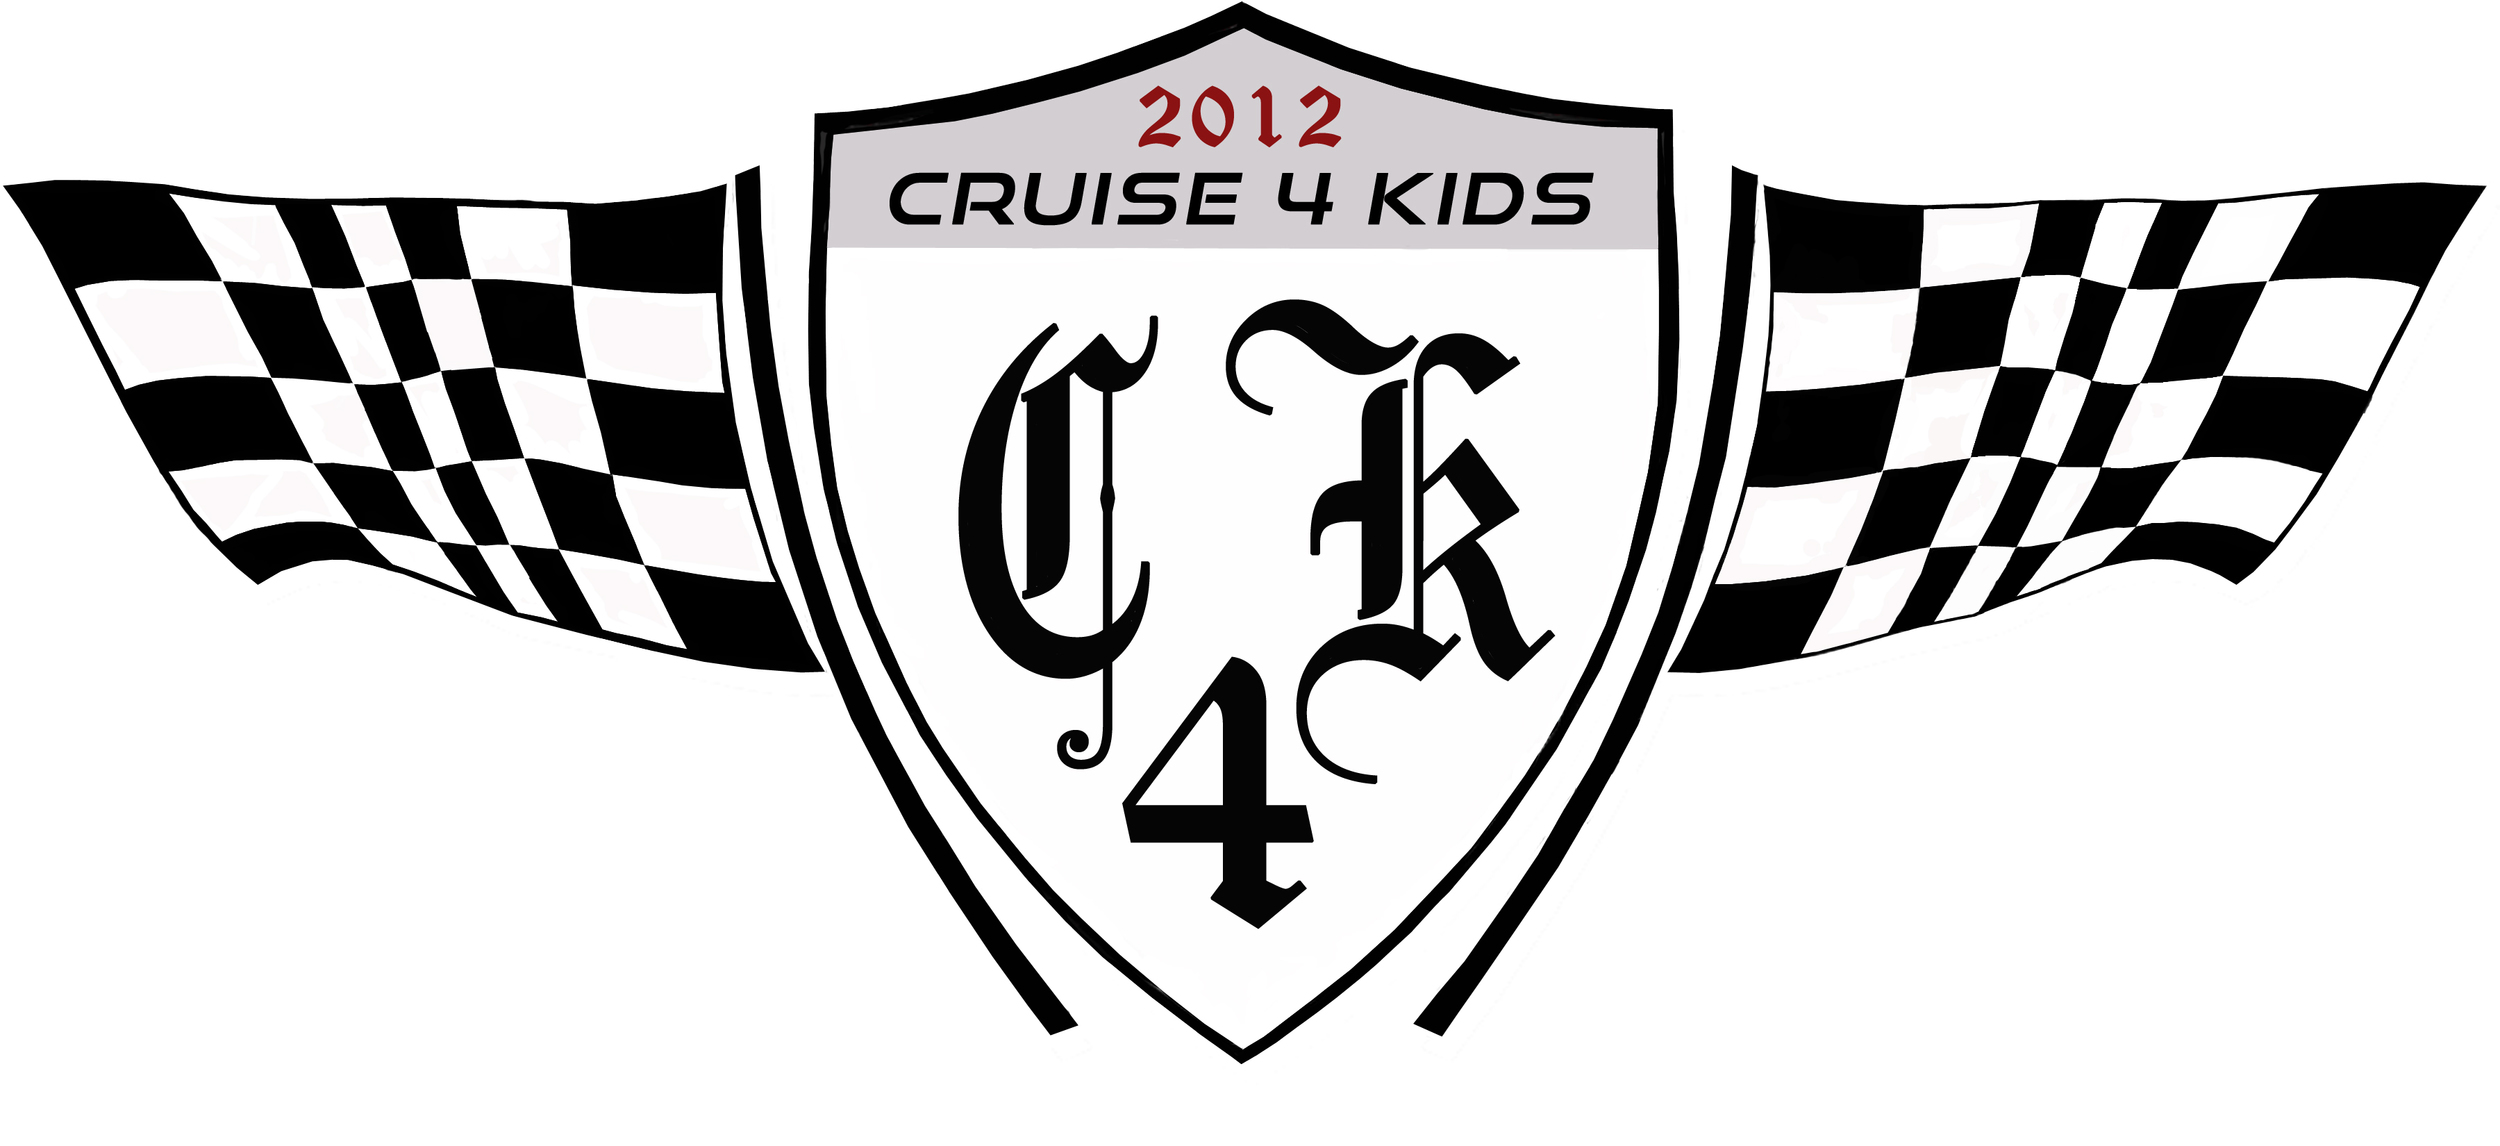 2012 Car Rally Decal.jpg